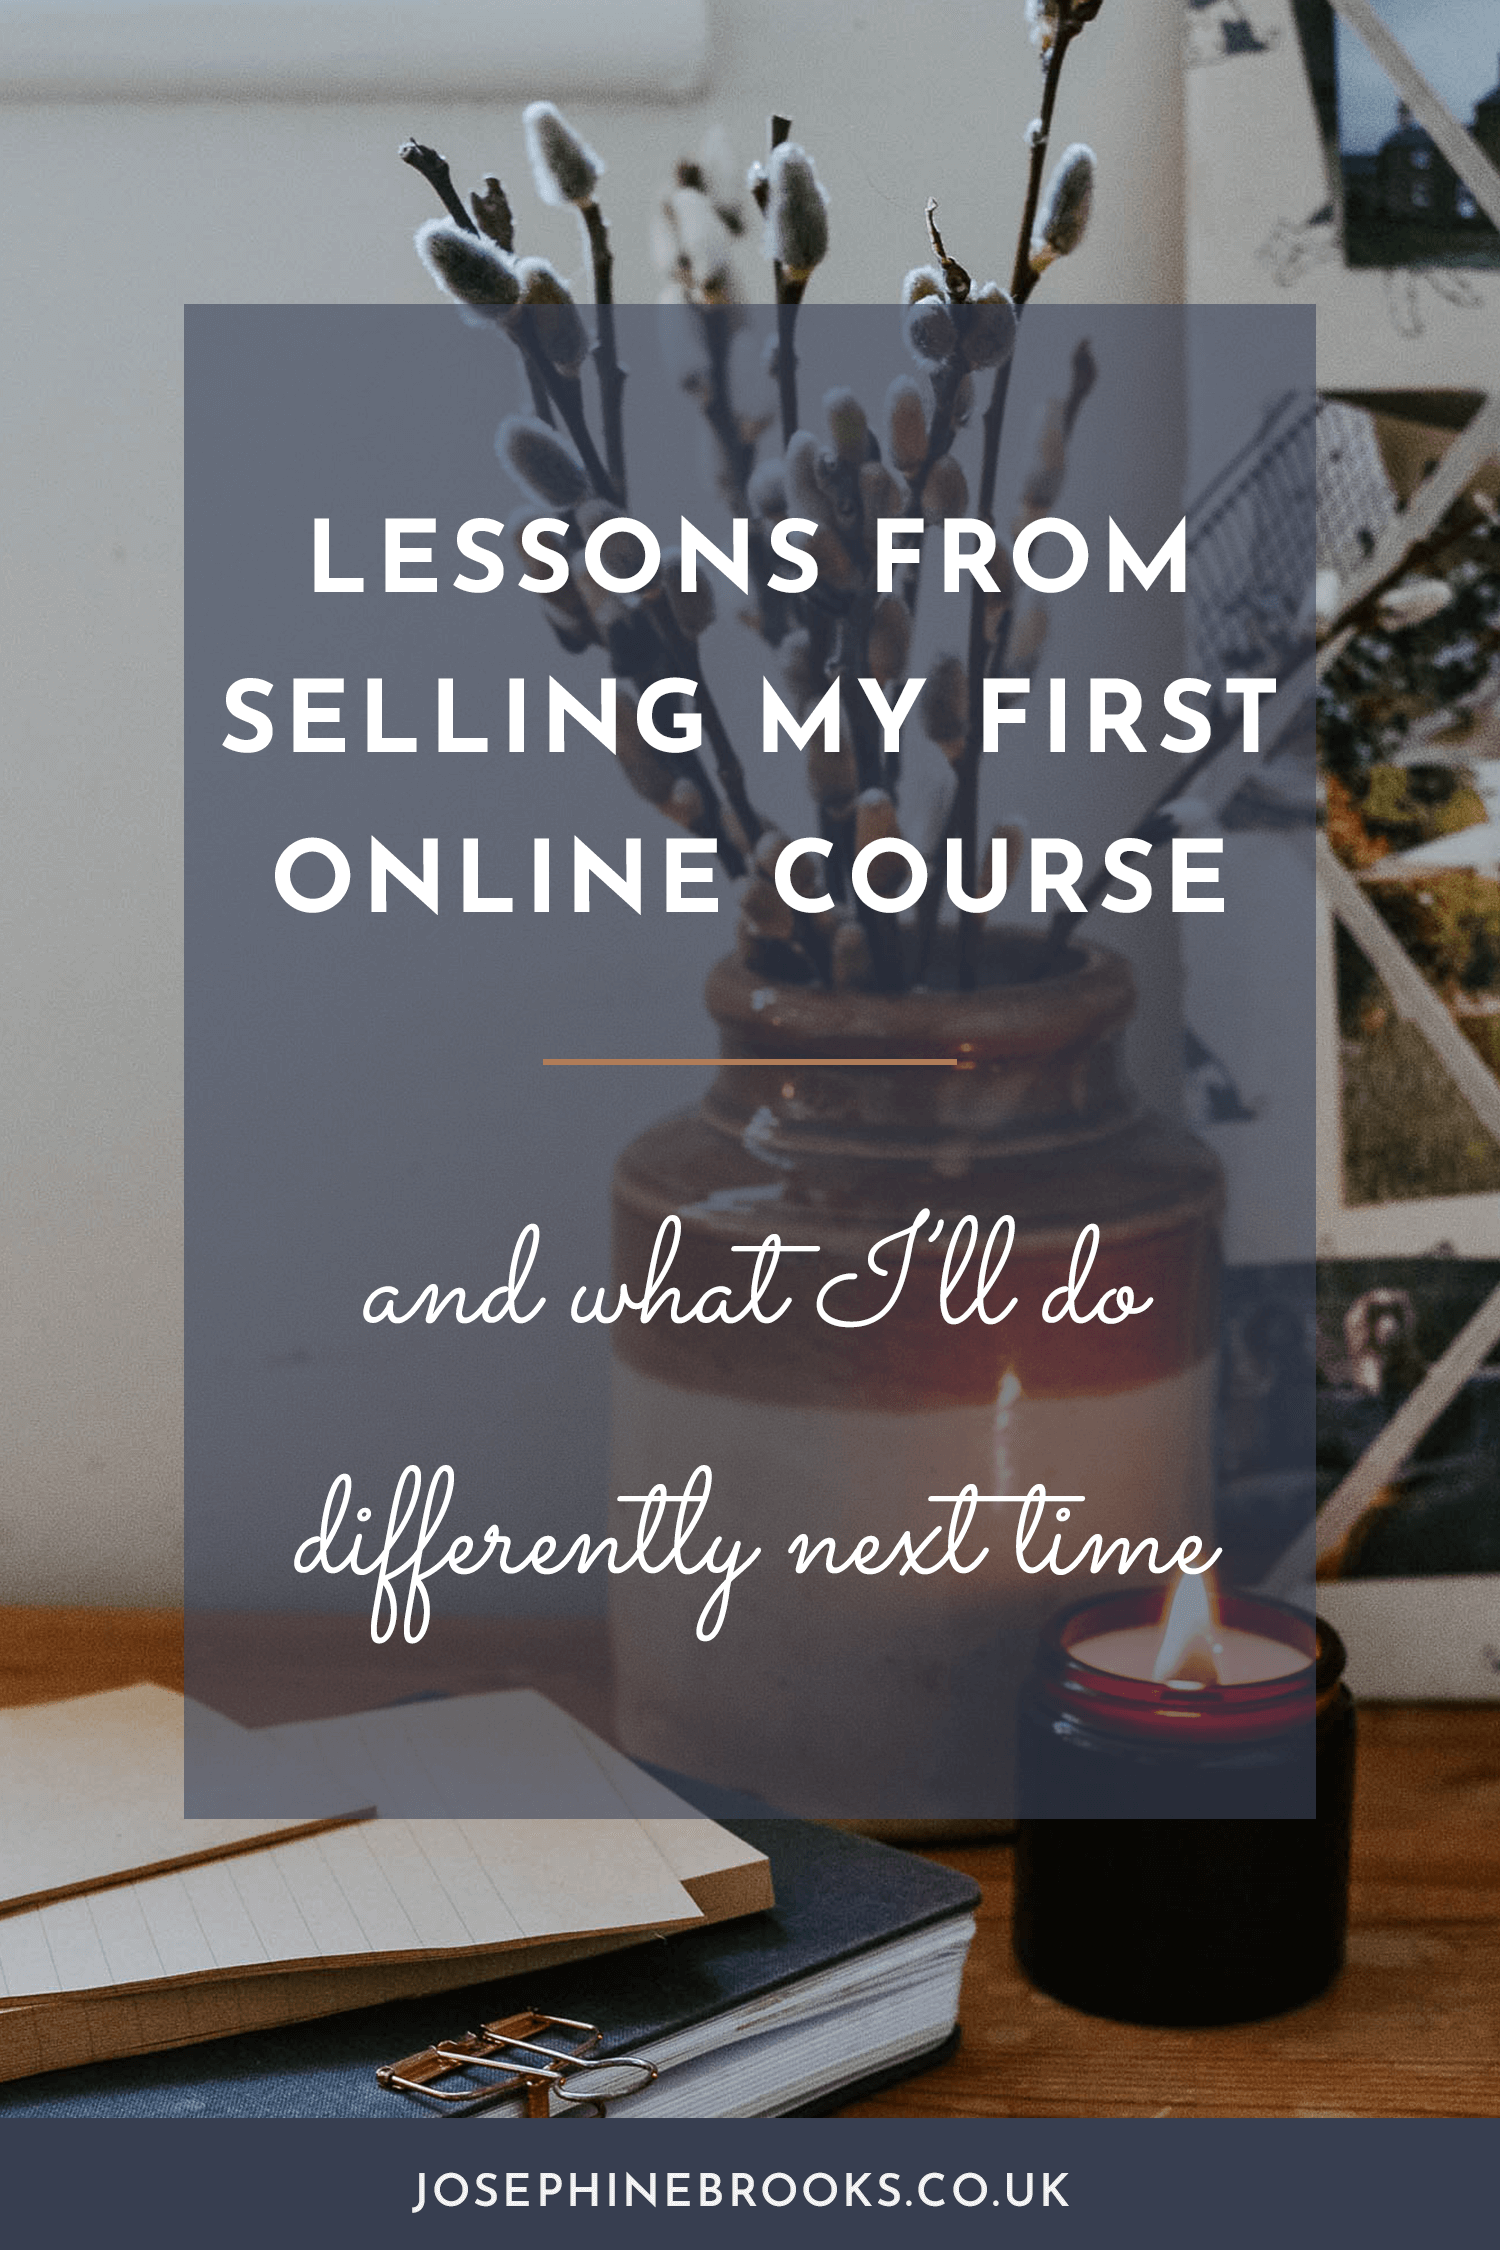 Lessons from selling my first online course & what I'll do differently next time